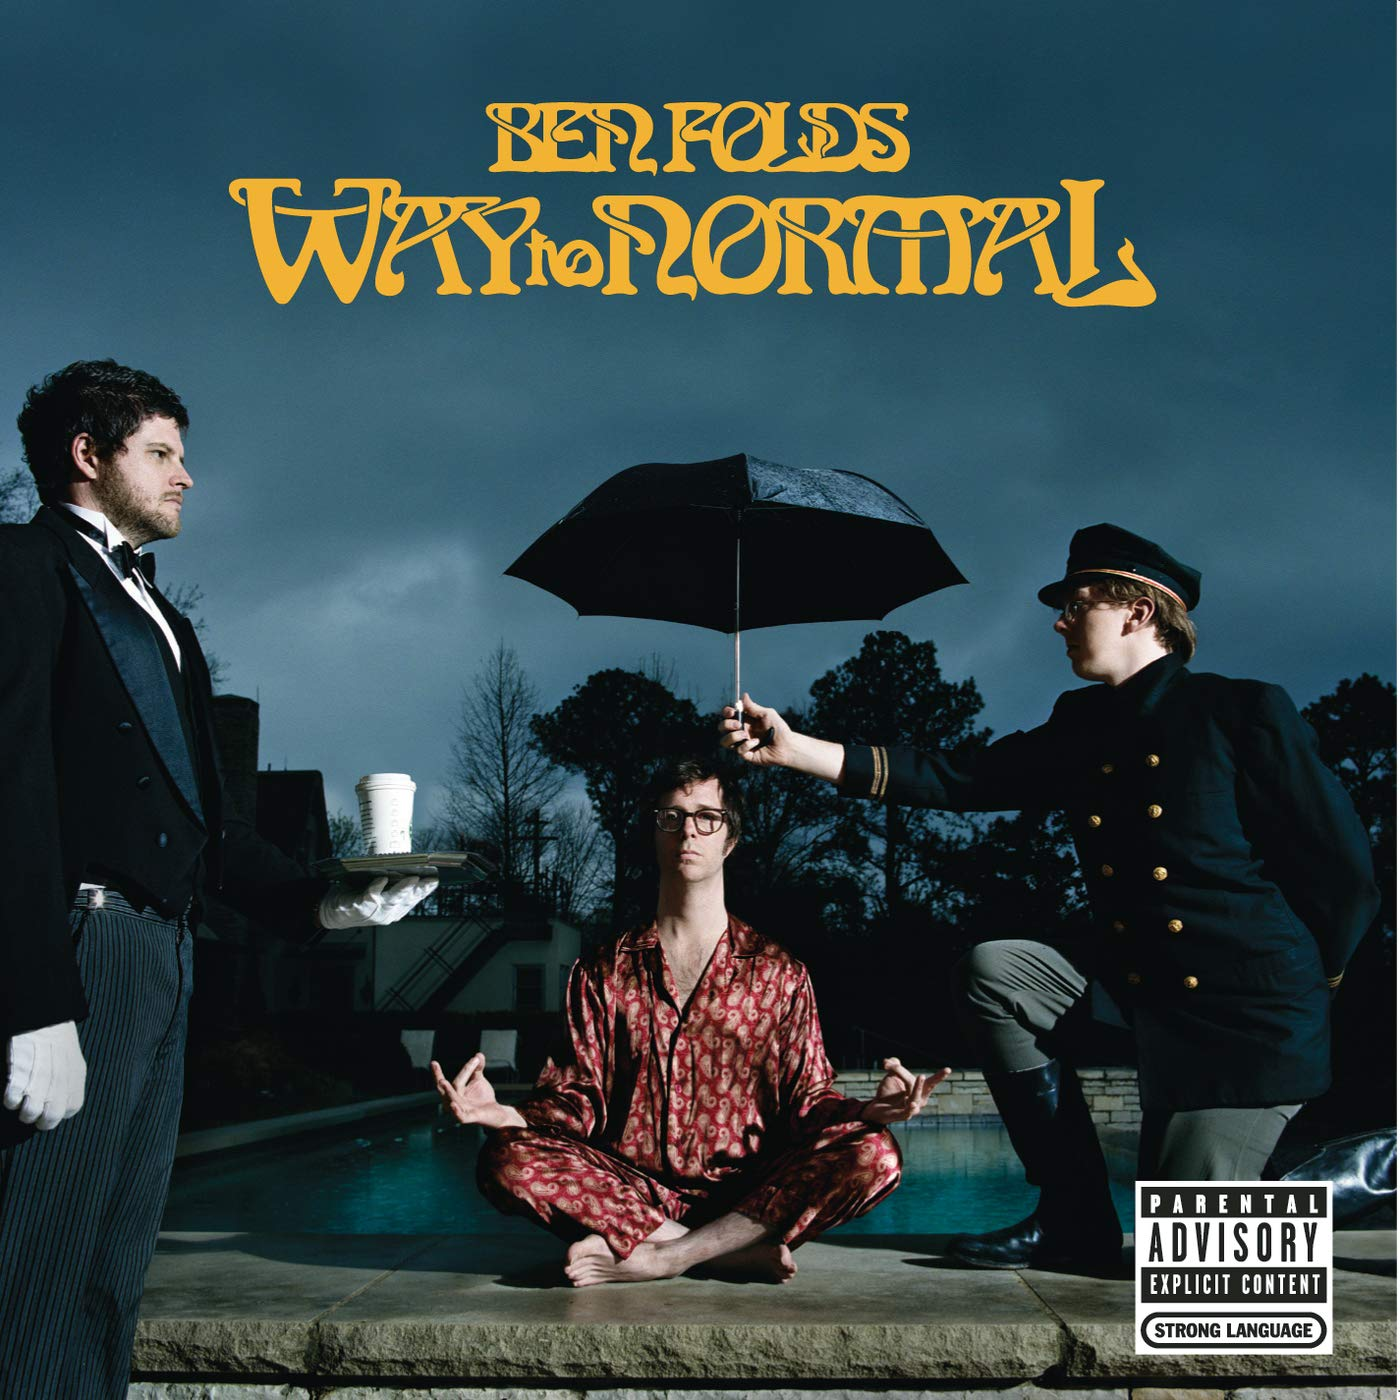 Ben Folds - Way to Normal (2008) [FLAC] Download